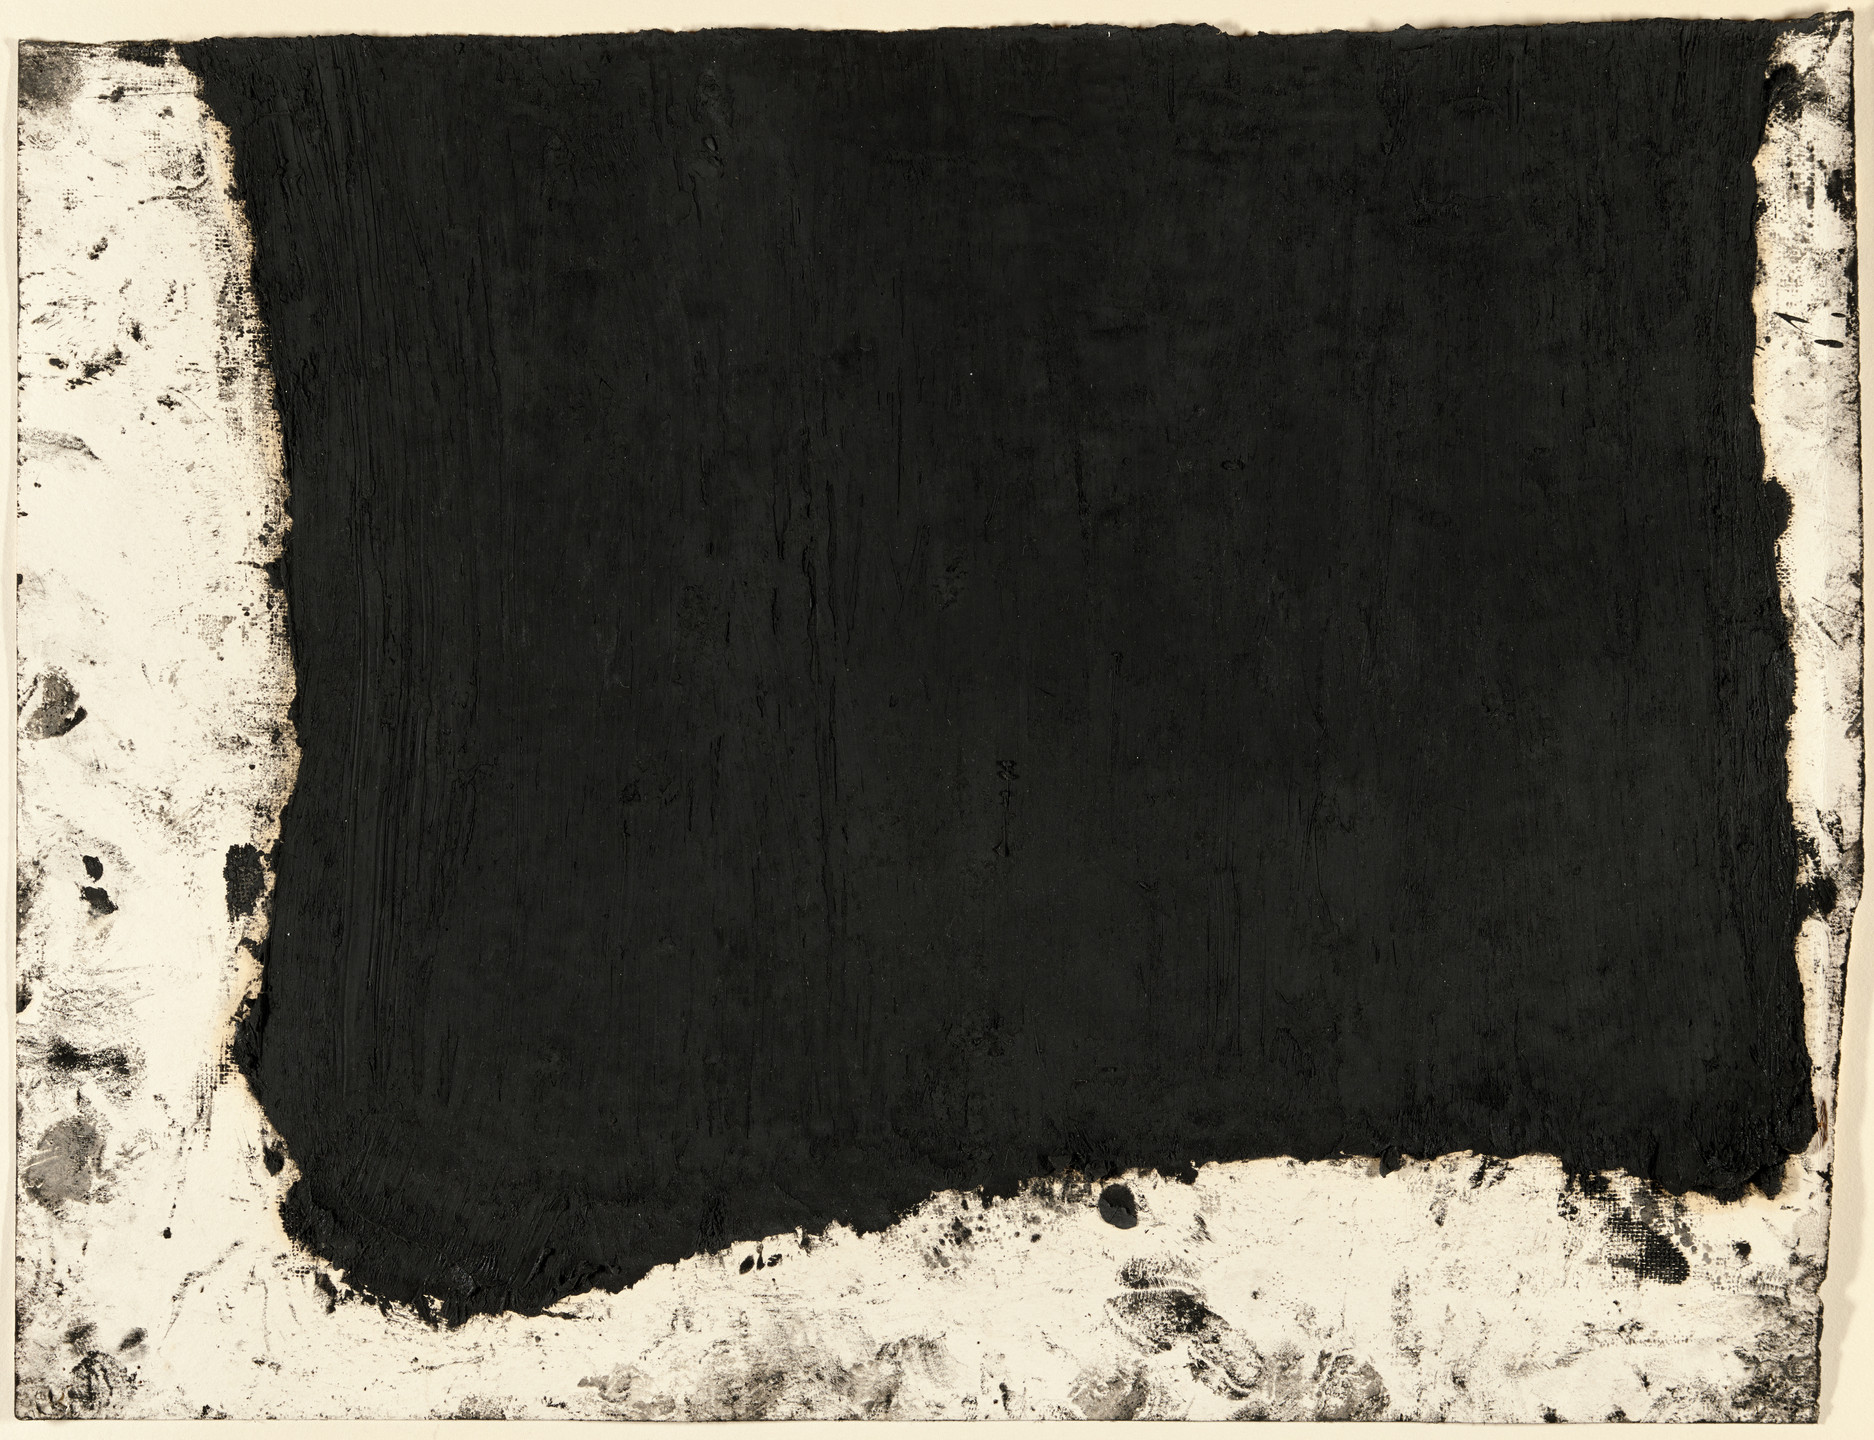 Richard Serra. Videy Drawing XIX. 1991